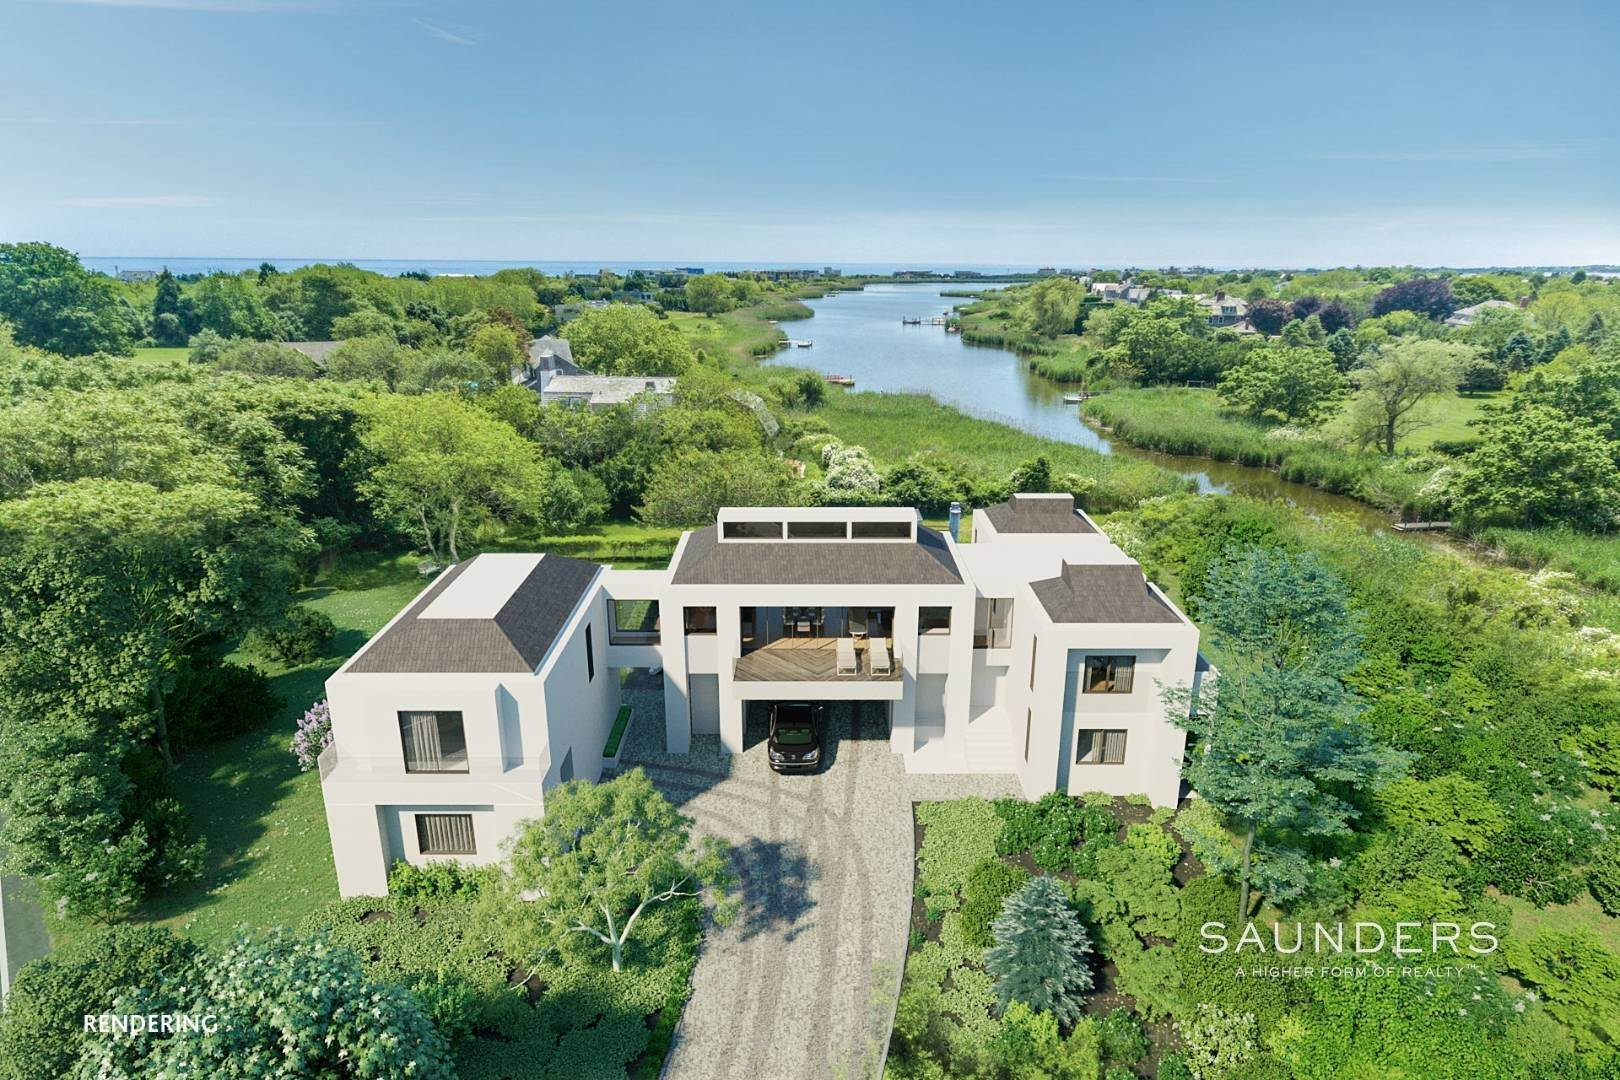 Single Family Homes for Sale at Oasis By The Ocean - Endless Sunsets, Water Views & Access 1076 Ocean Road, Bridgehampton, Southampton Town, NY 11932